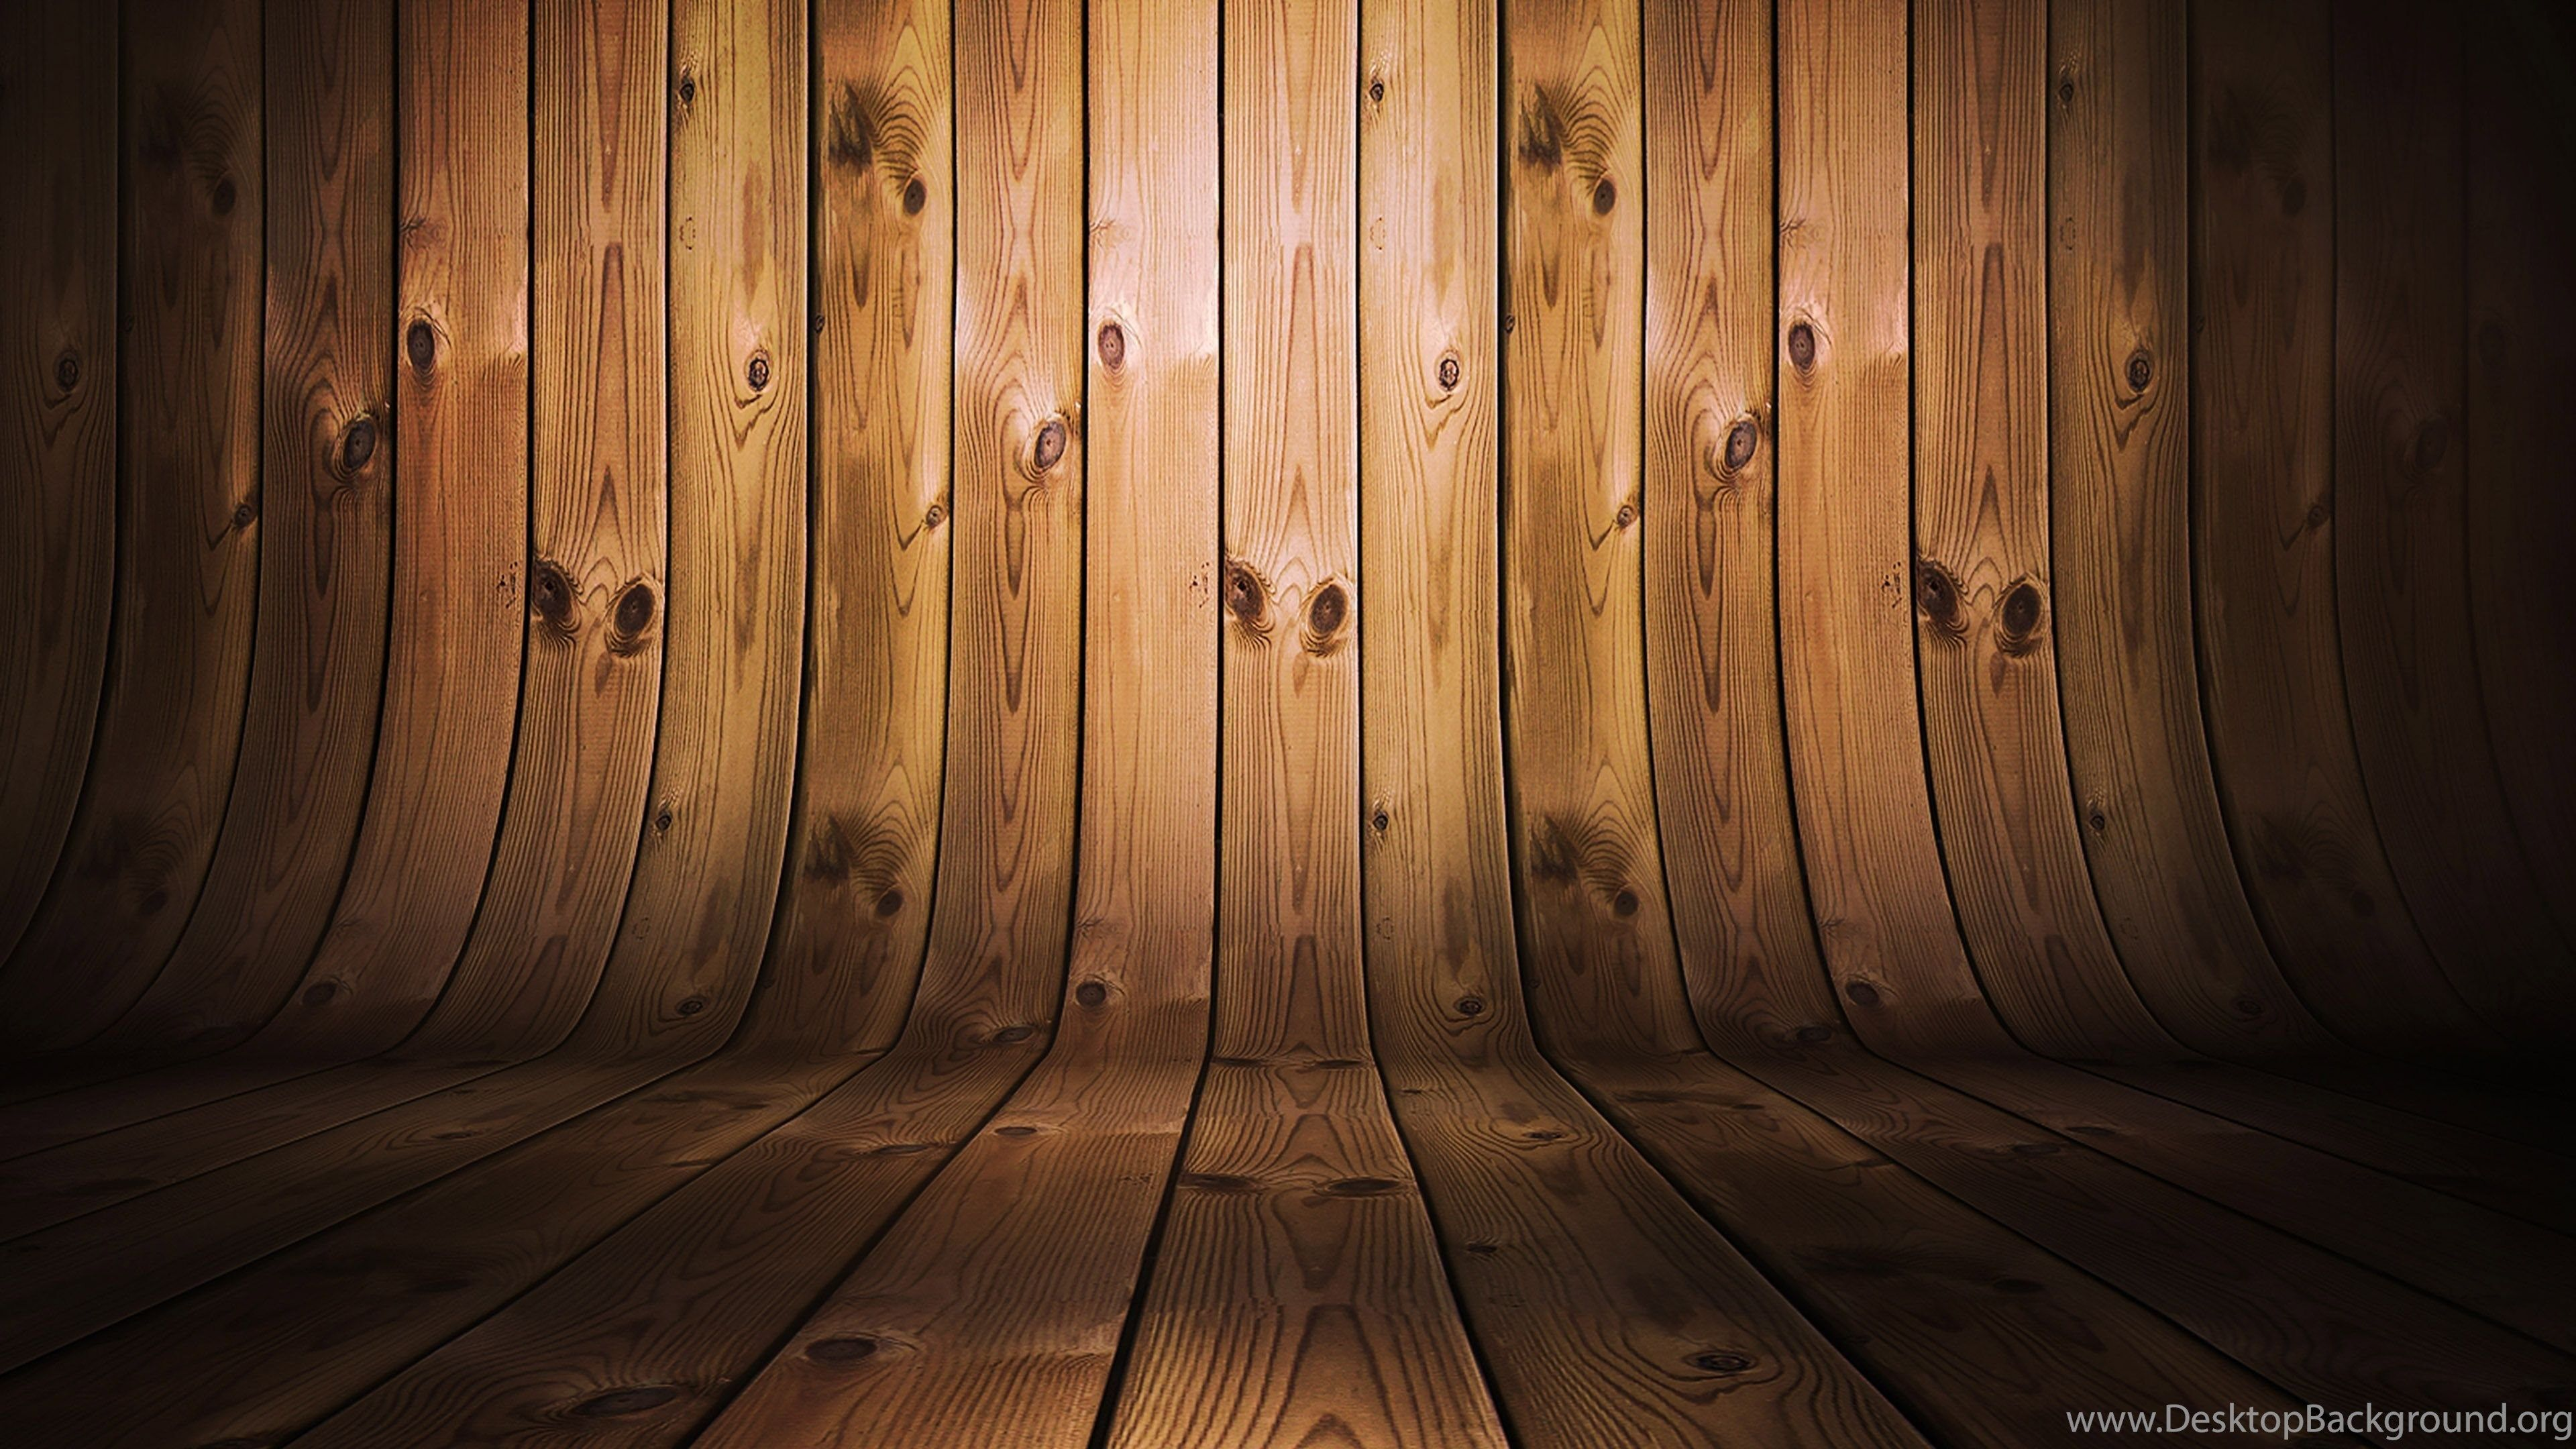 4k Wood Wallpapers Top Free 4k Wood Backgrounds Wallpaperaccess